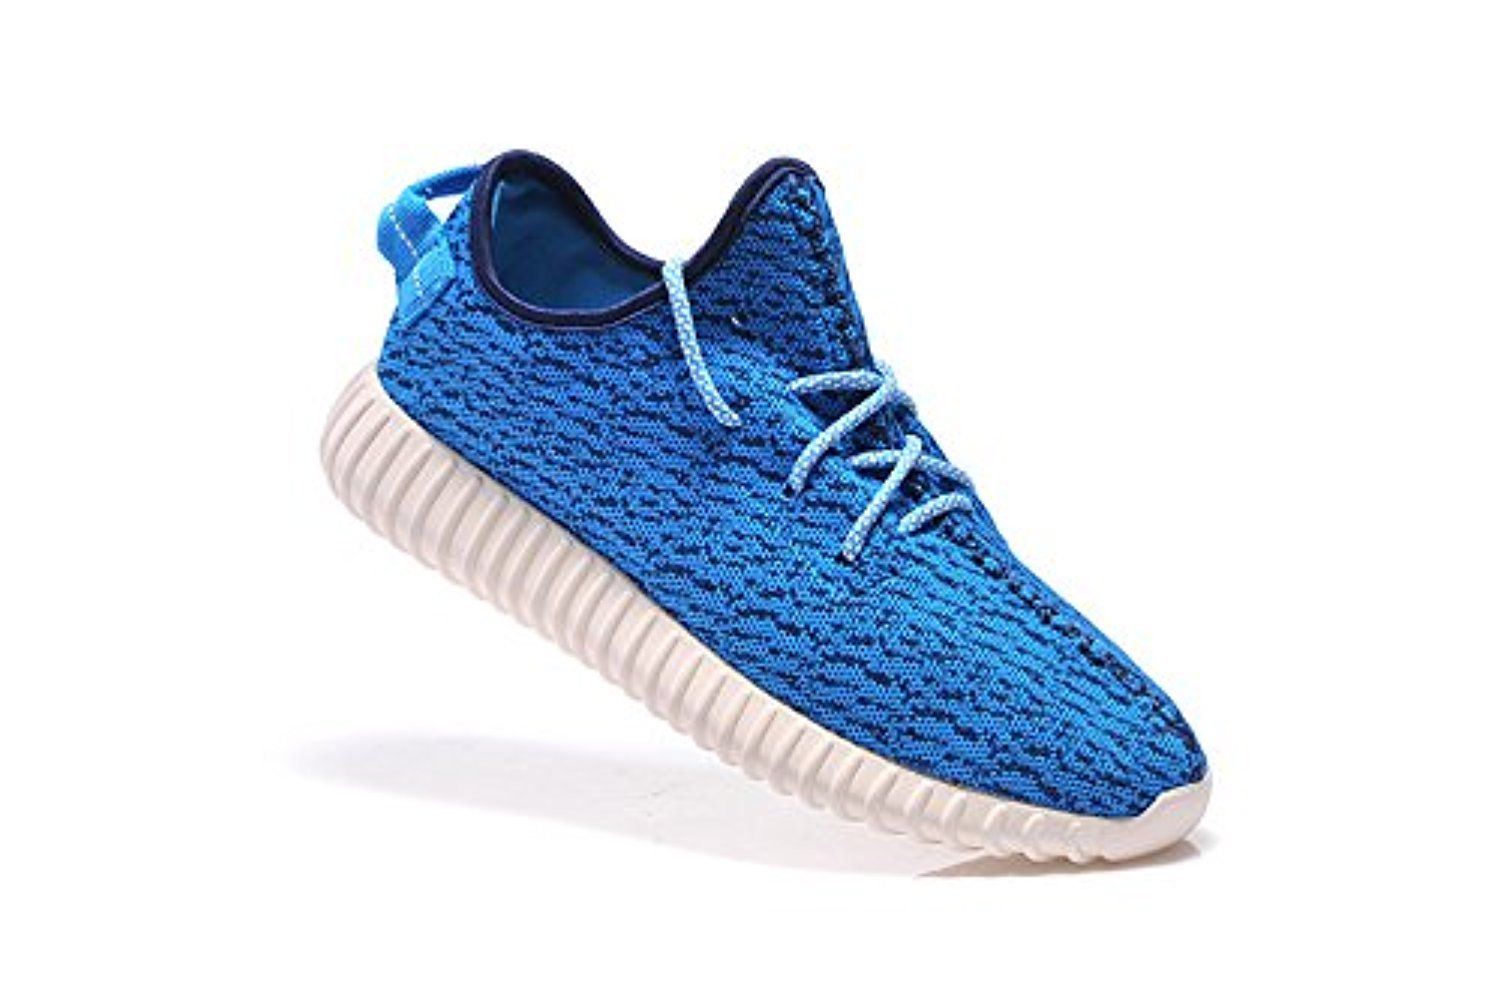 Adidas coconut 350 Kanye woven and blue shoes for men and women 7us --  Awesome